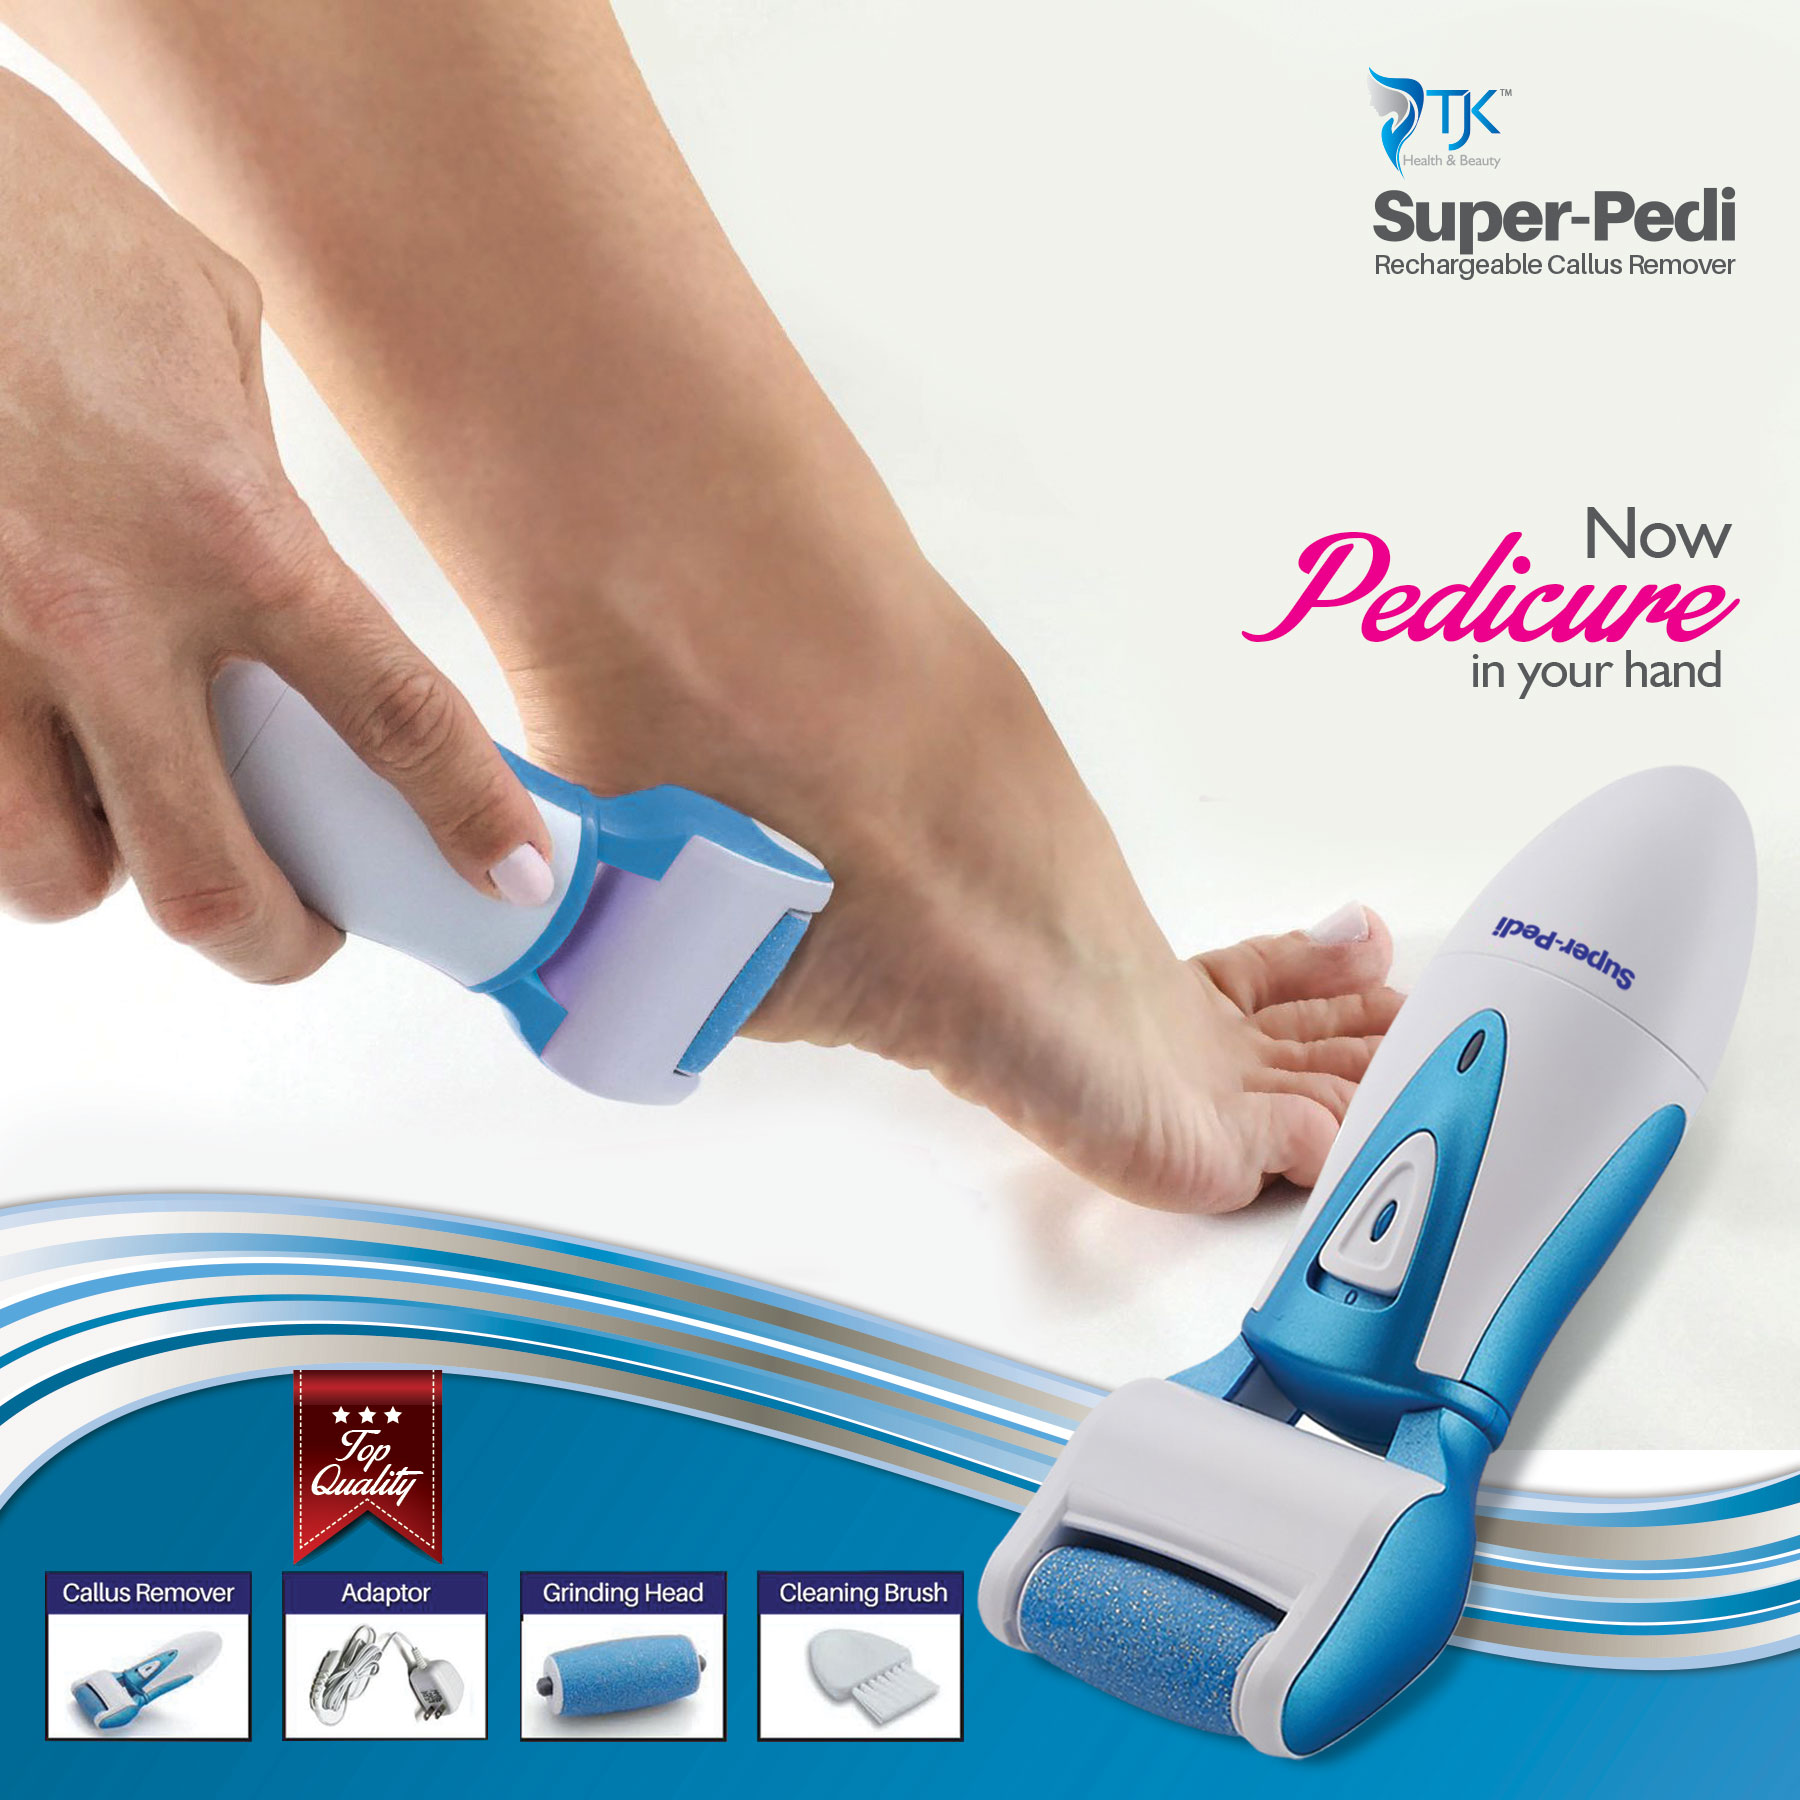 TJK Health and Beauty Super-Pedi Rechargeable Callus Remover